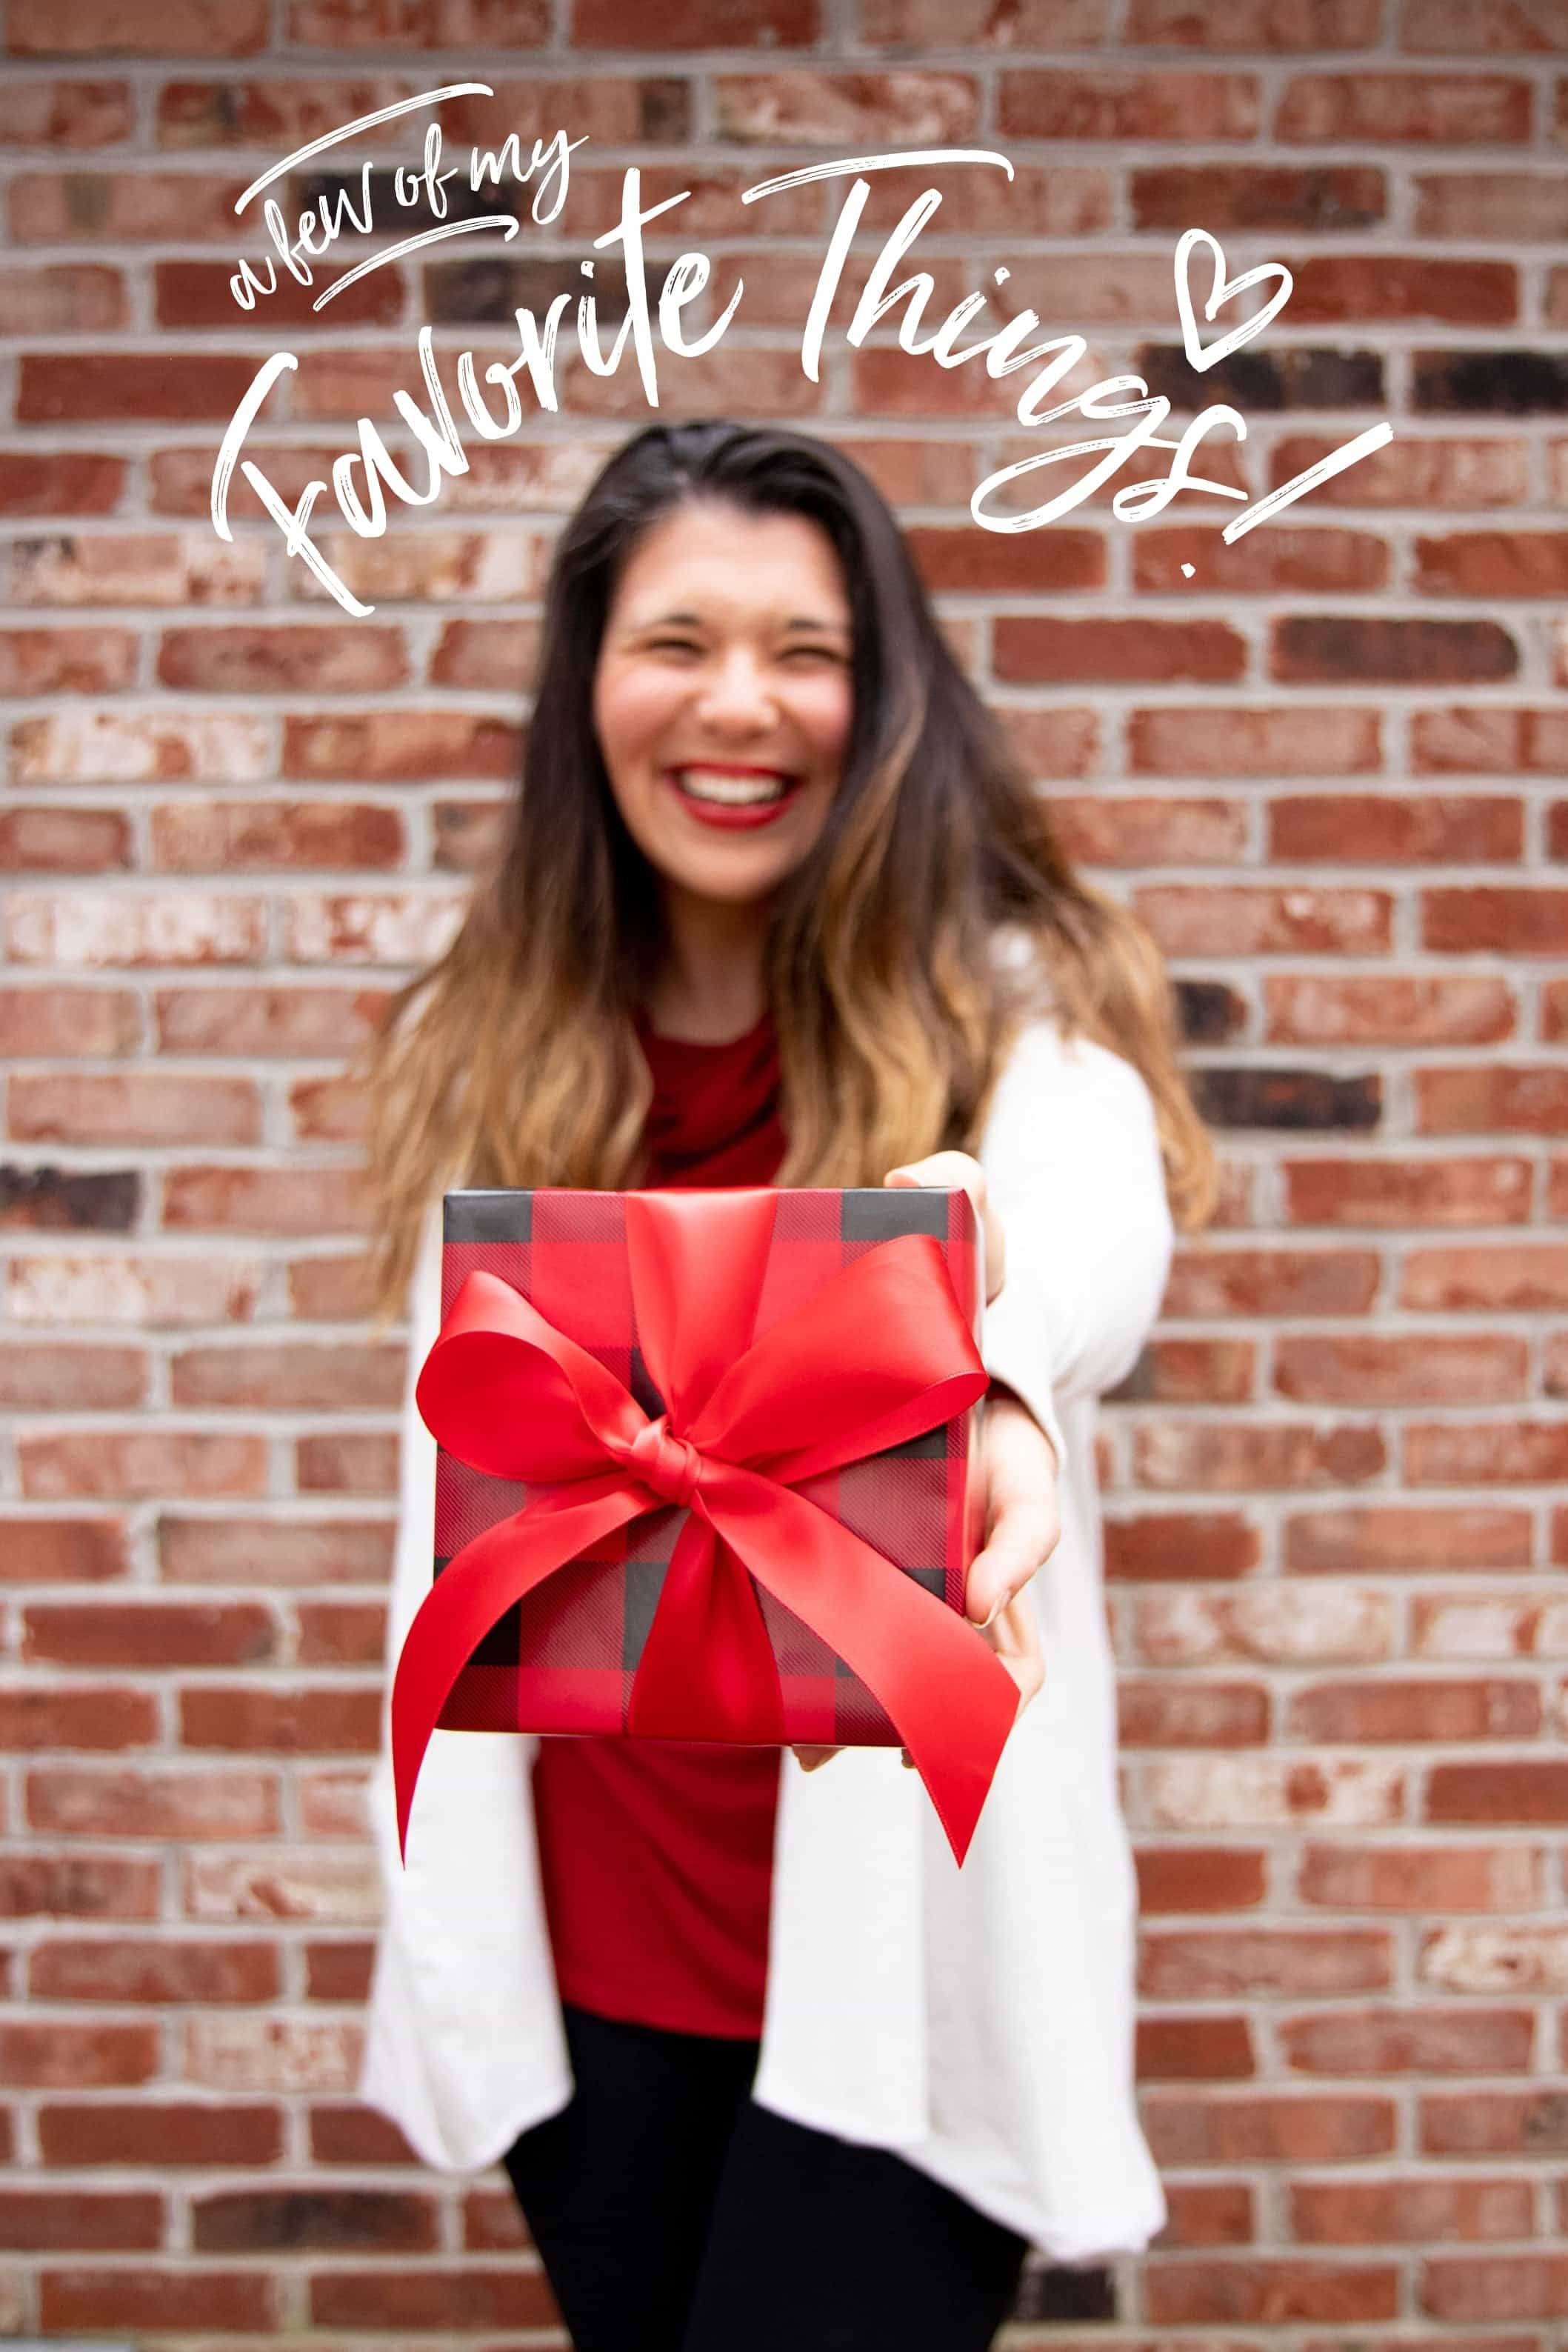 """Brunette woman holding out a wrapped gift, with the text """"a few of my Favorite Things"""" over her head"""